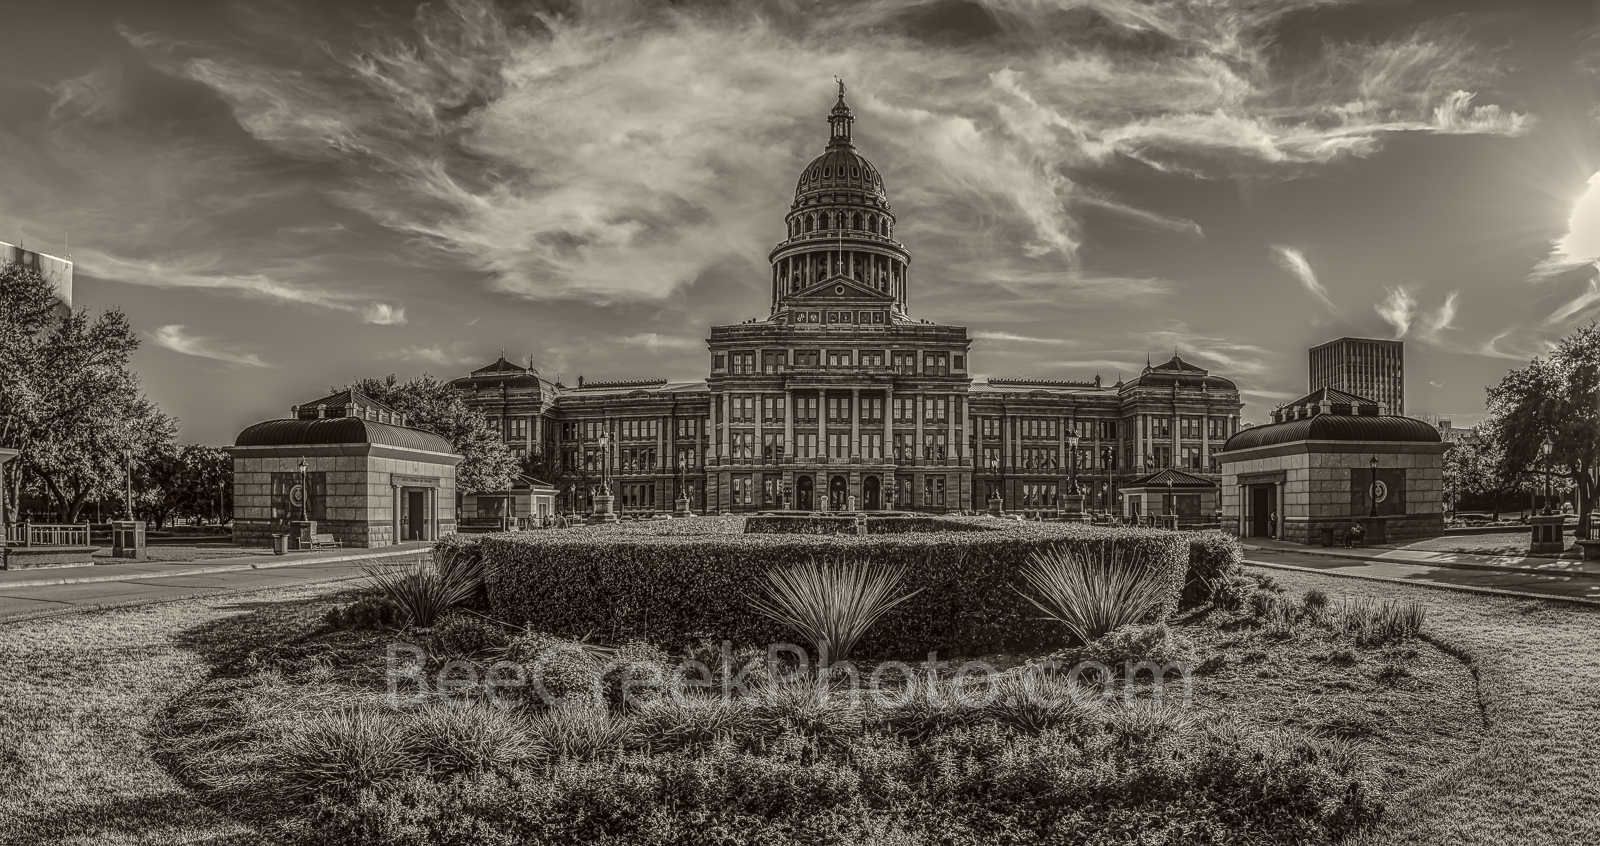 Austin, Texas Capitol, vintage, sepia, fine art, cityscape, downtown, city, State Capitol building, Texas State Capitol, state Capitol, Capitol of Texas, tourist, history, historic, trees, green lawn,, photo